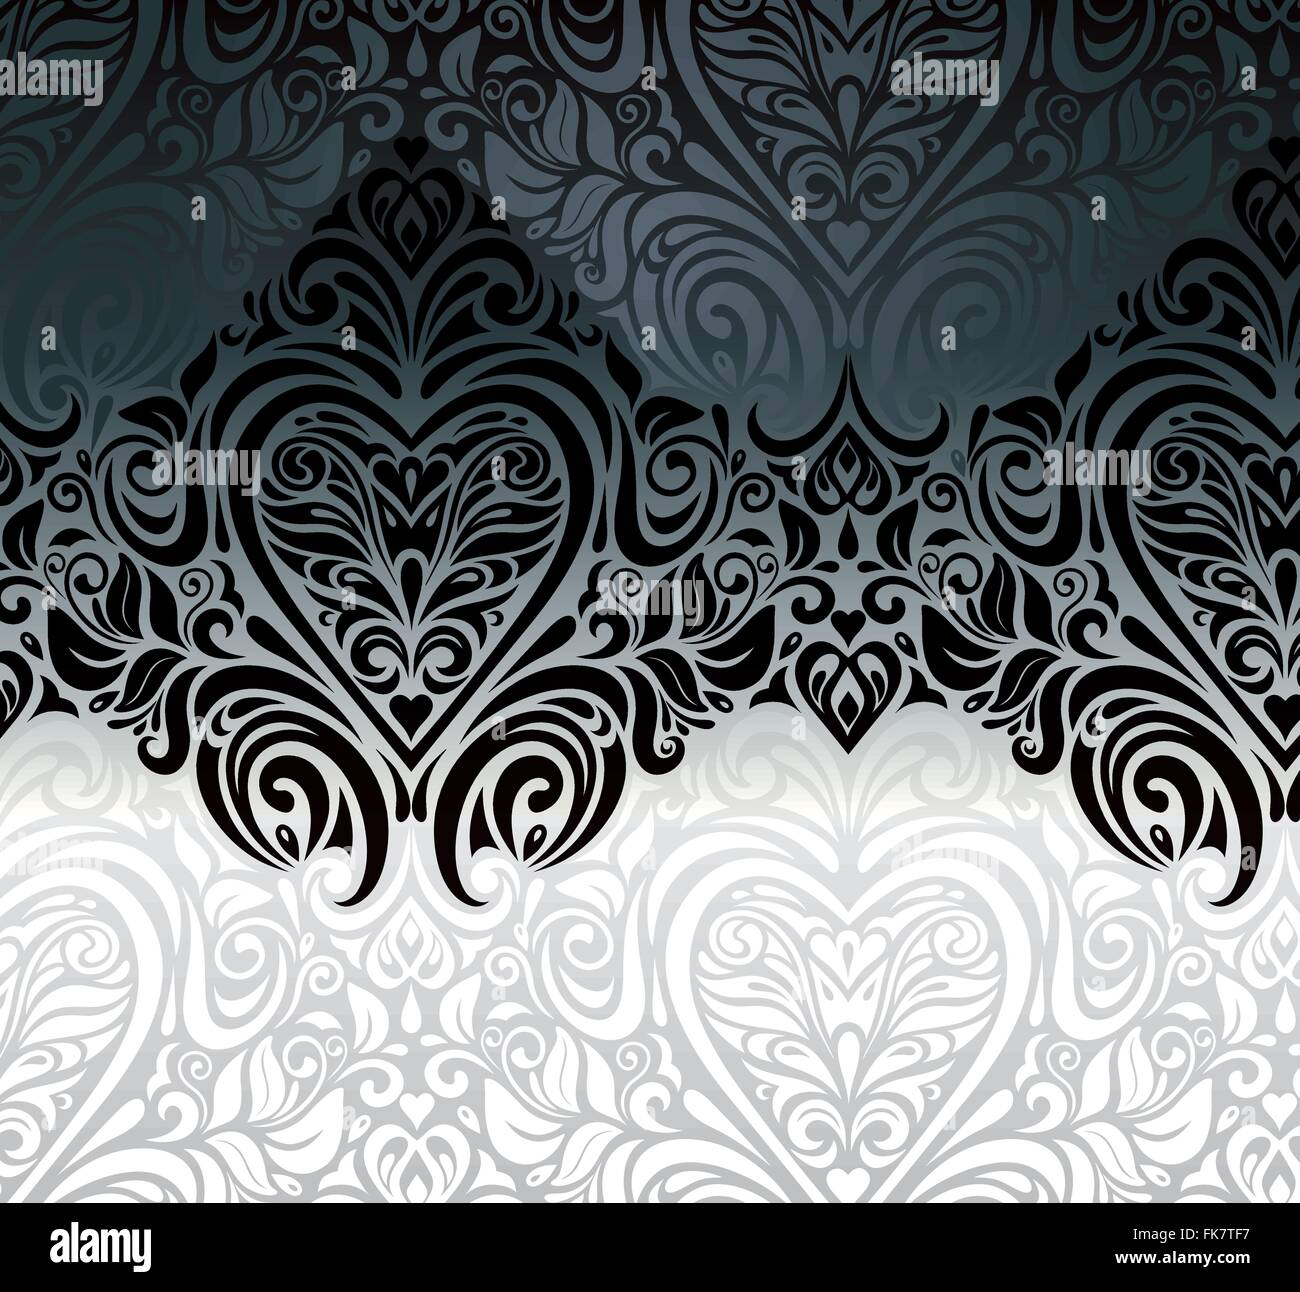 wedding vintage black white floral invitation background design stock vector image art alamy https www alamy com stock photo wedding vintage black white floral invitation background design 97903211 html